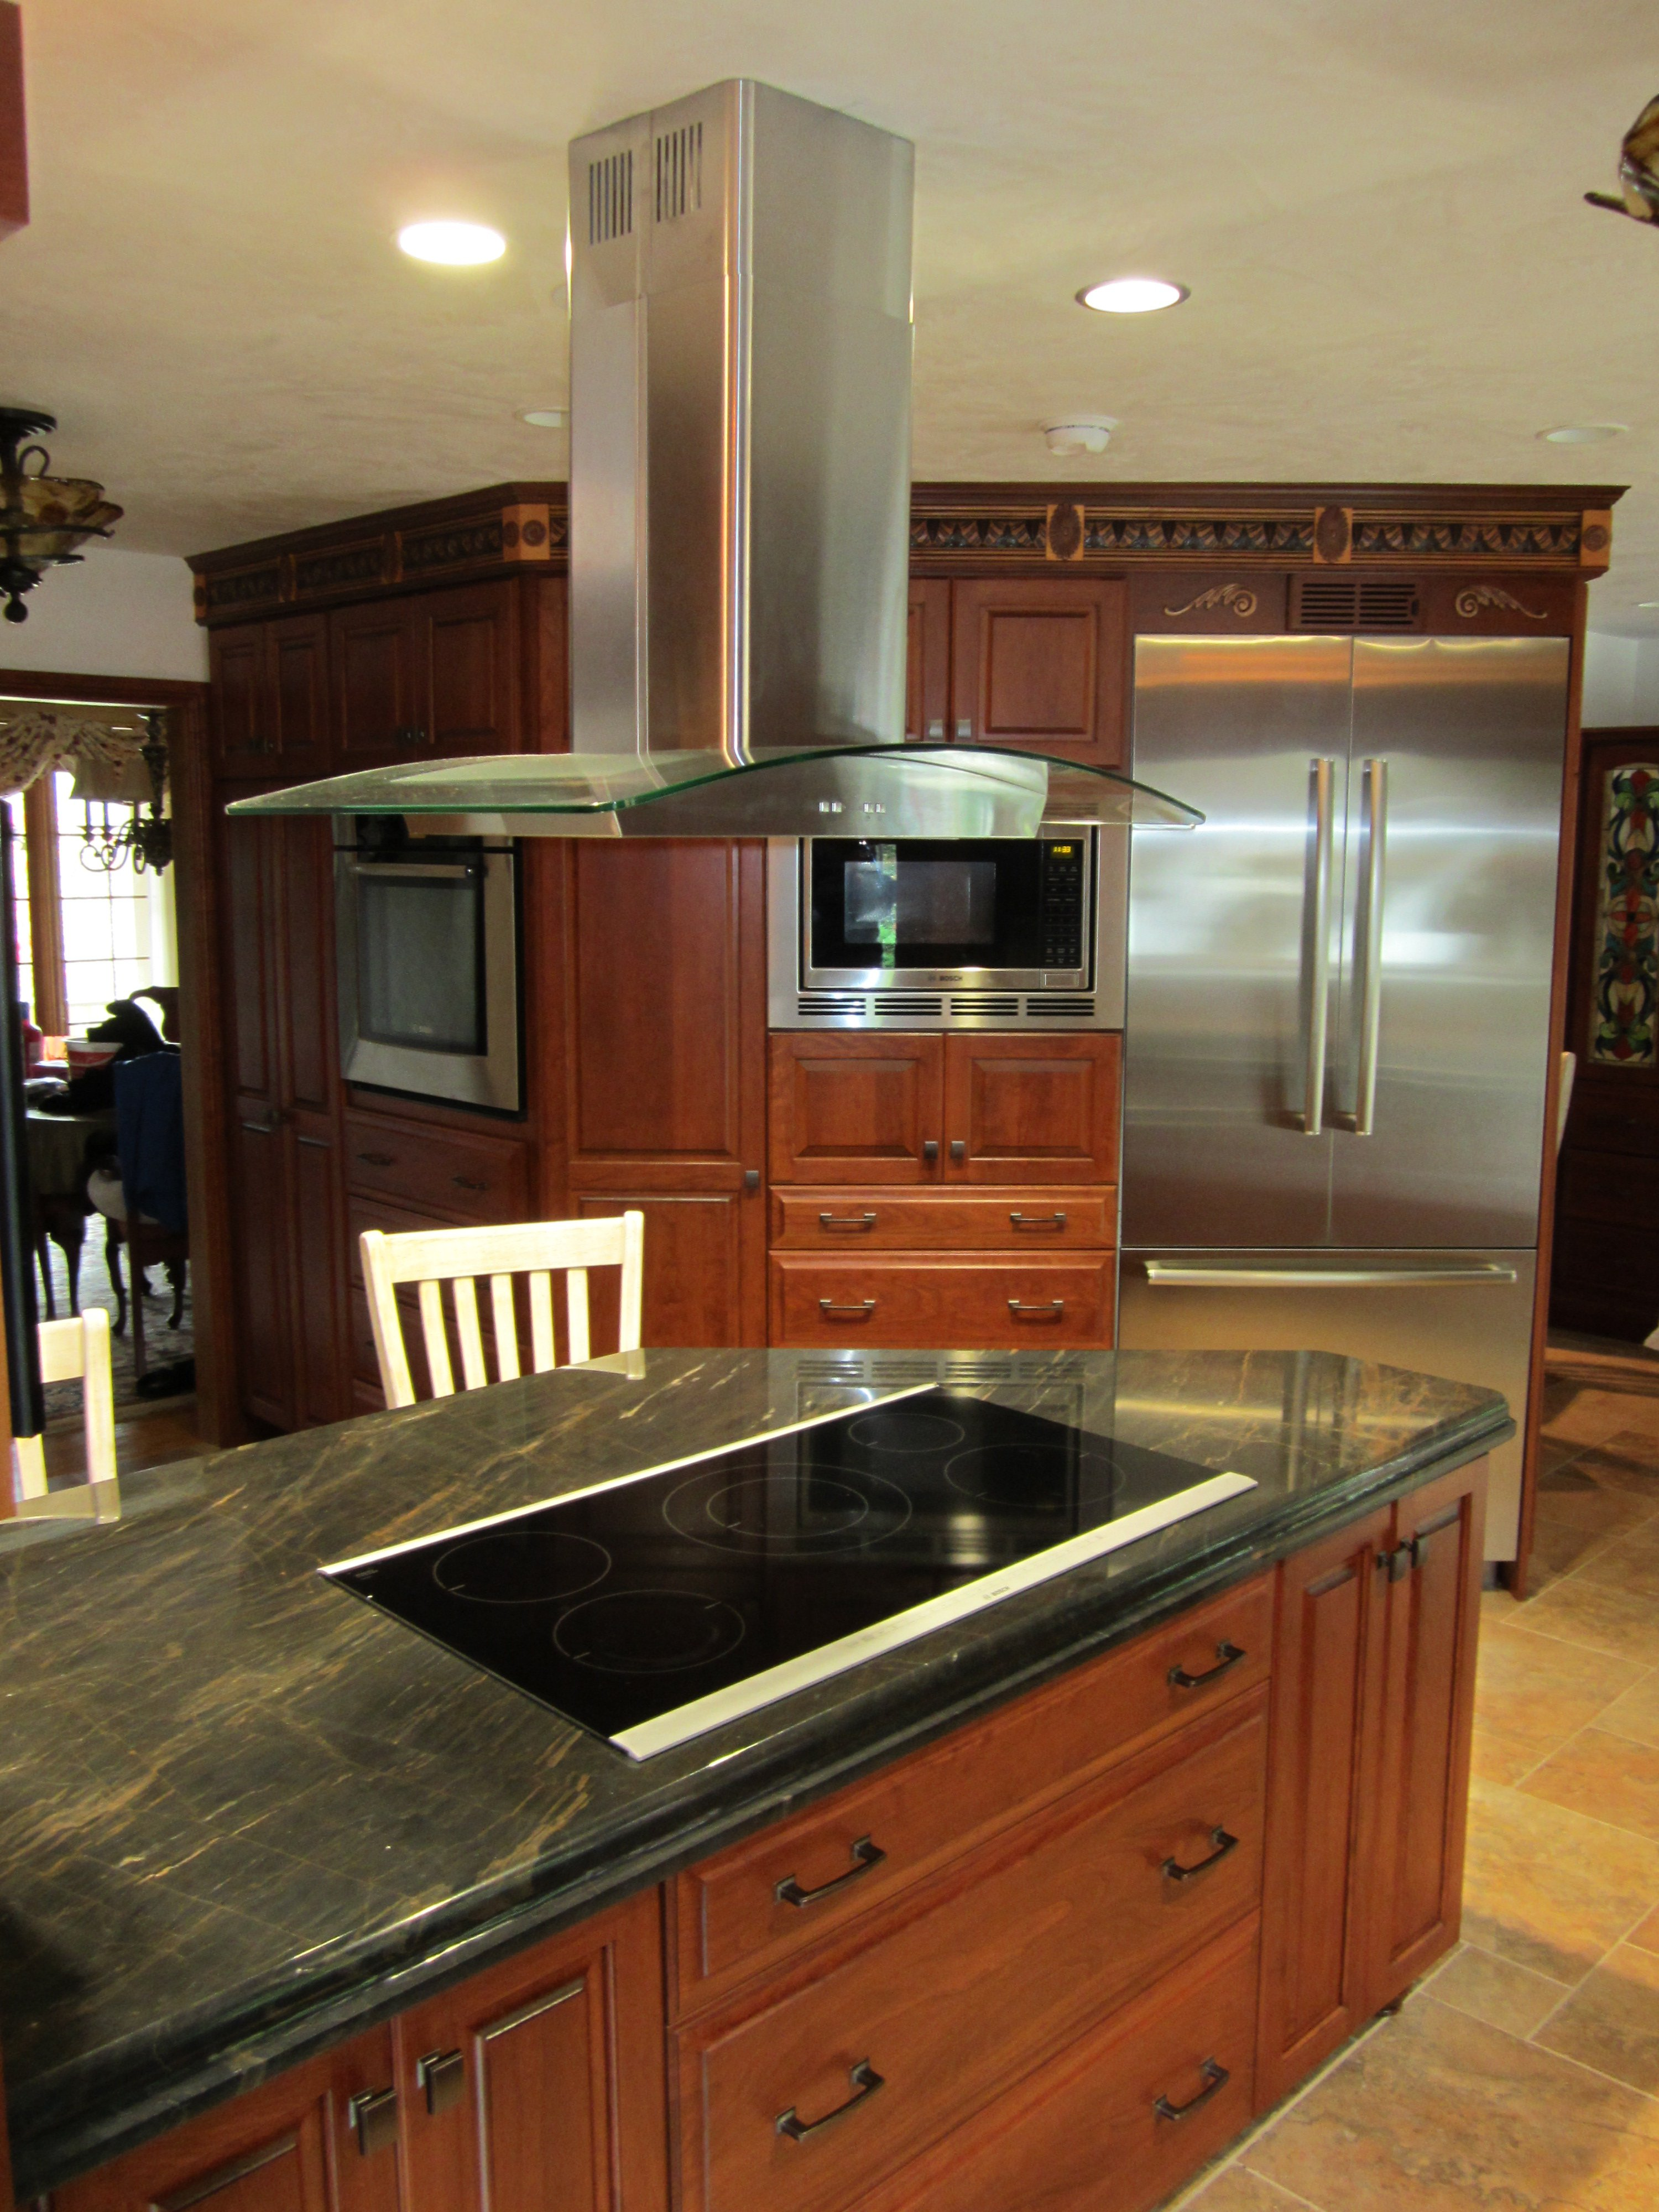 Kabinet koncepts kitchen remodeling murrysville pa for Kitchen design 43055